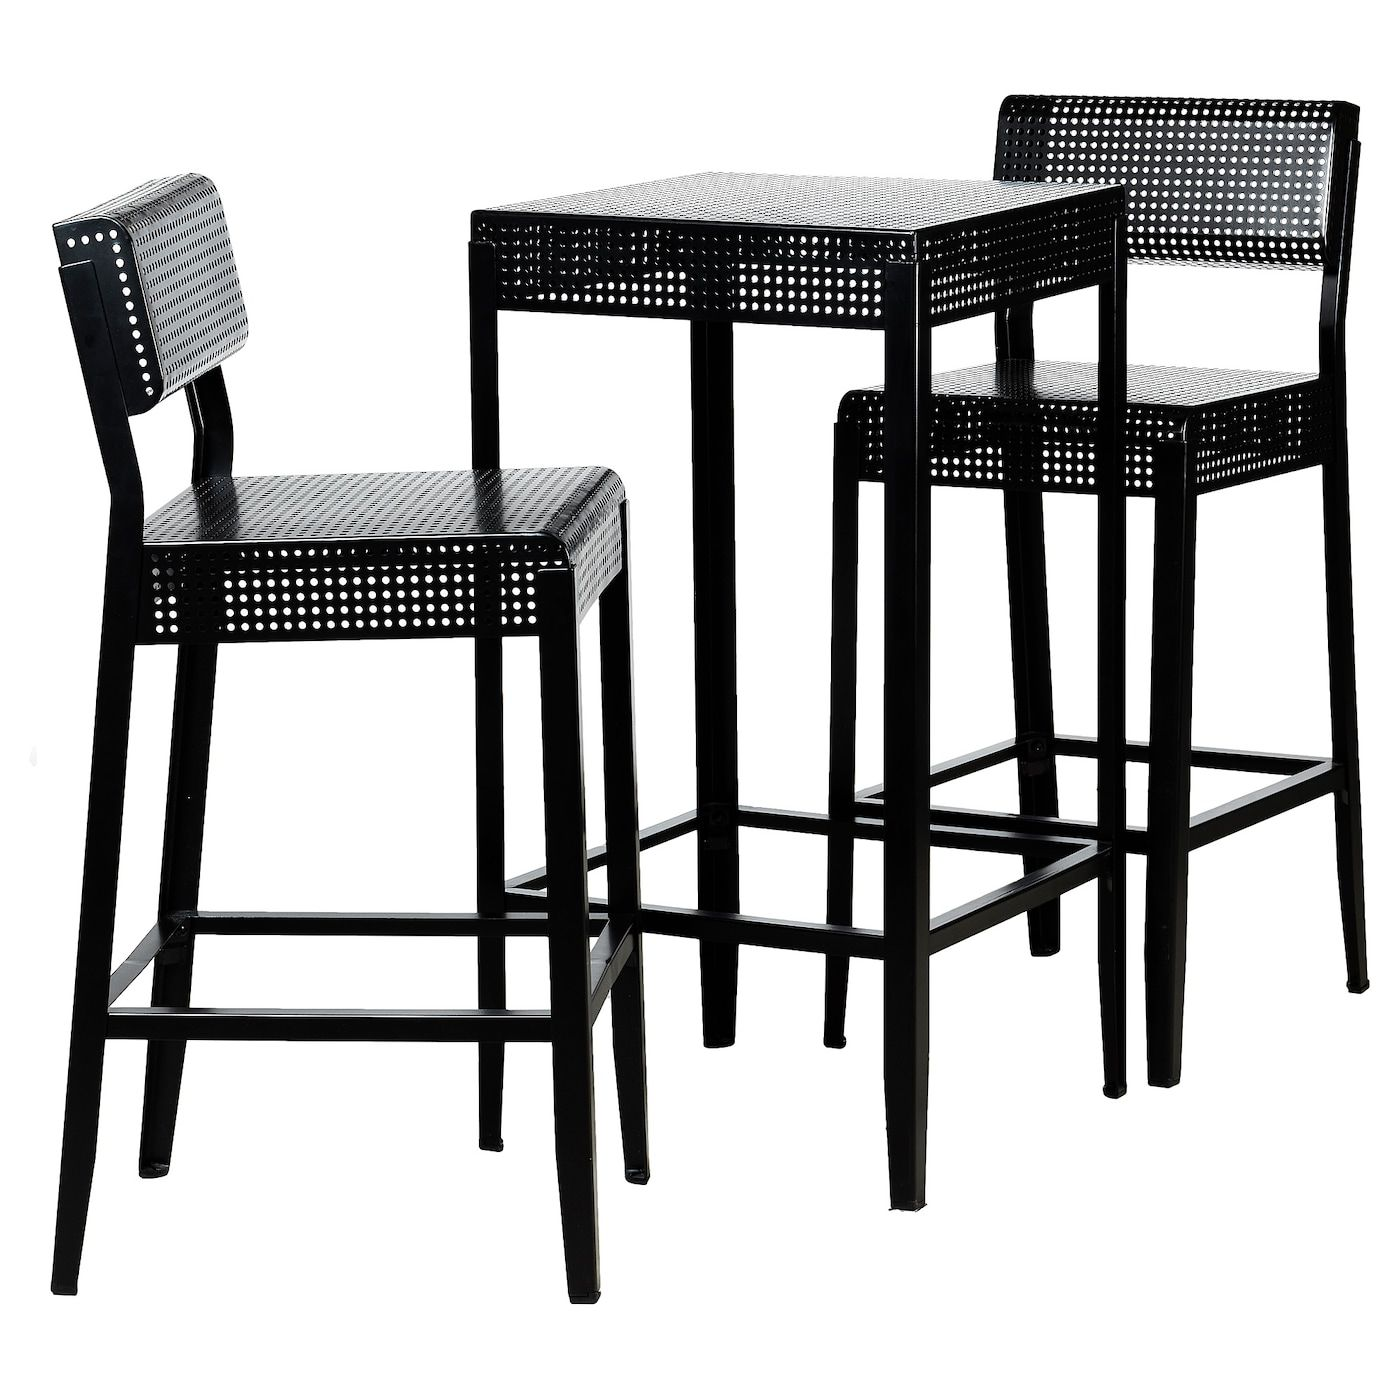 Frekvens Theke 2 Barstuhle Ikea Osterreich In 2020 Bar Stools Bar Table Ikea Barstools